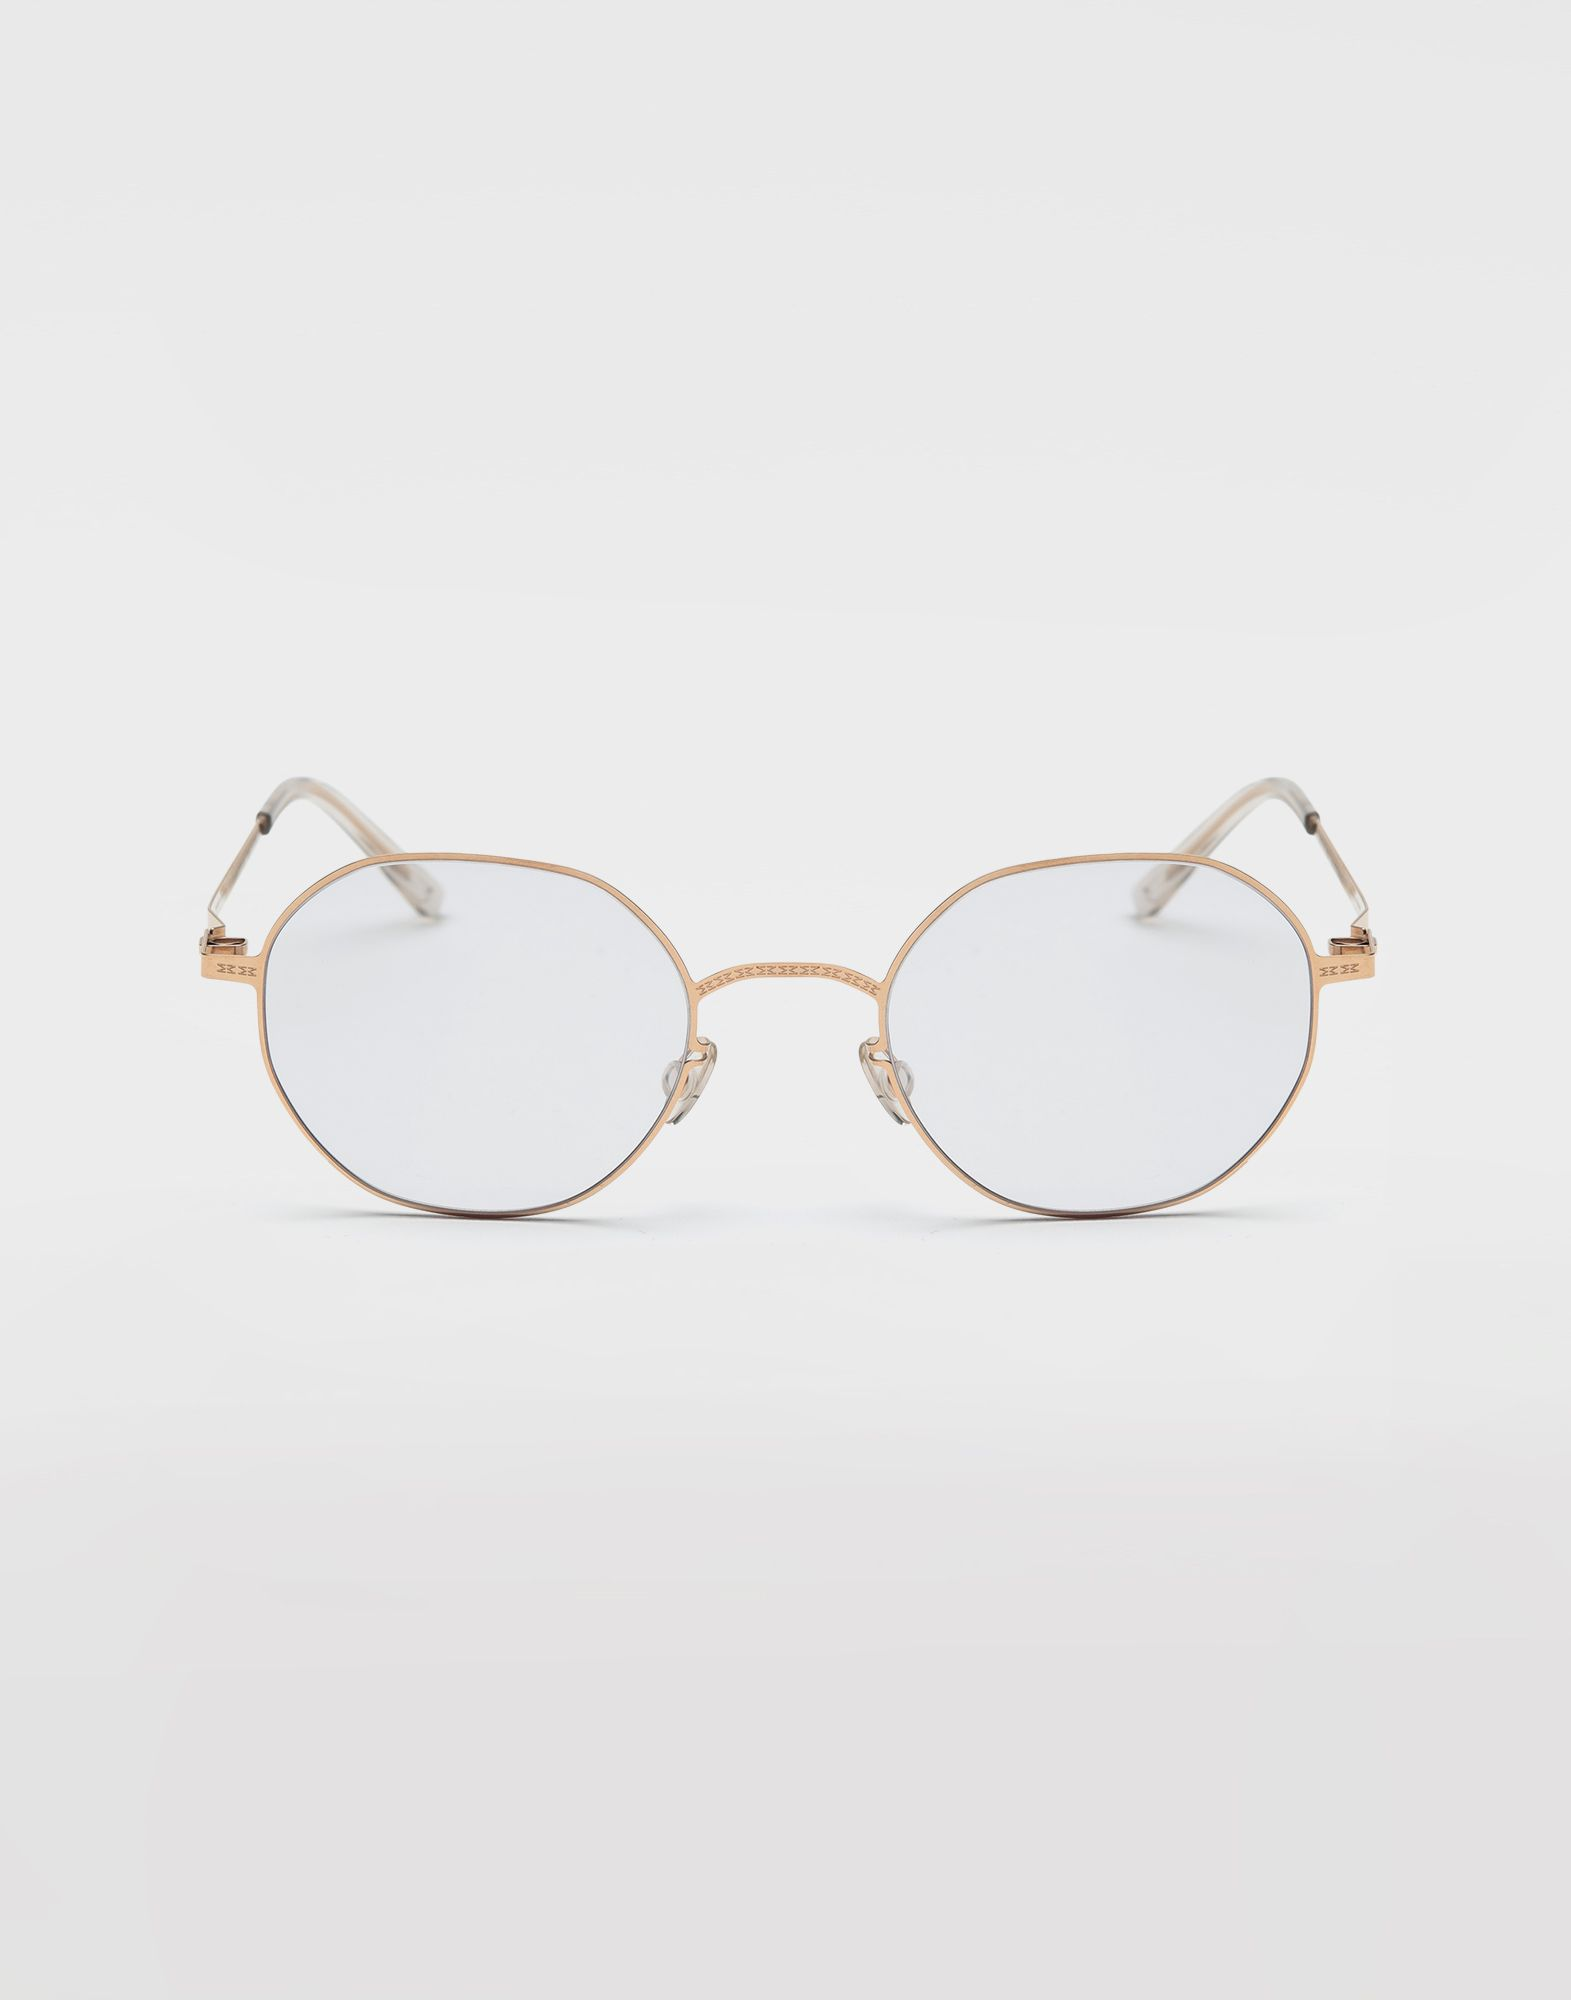 MAISON MARGIELA MYKITA + Maison Margiela 'CRAFT' Eyewear Woman f